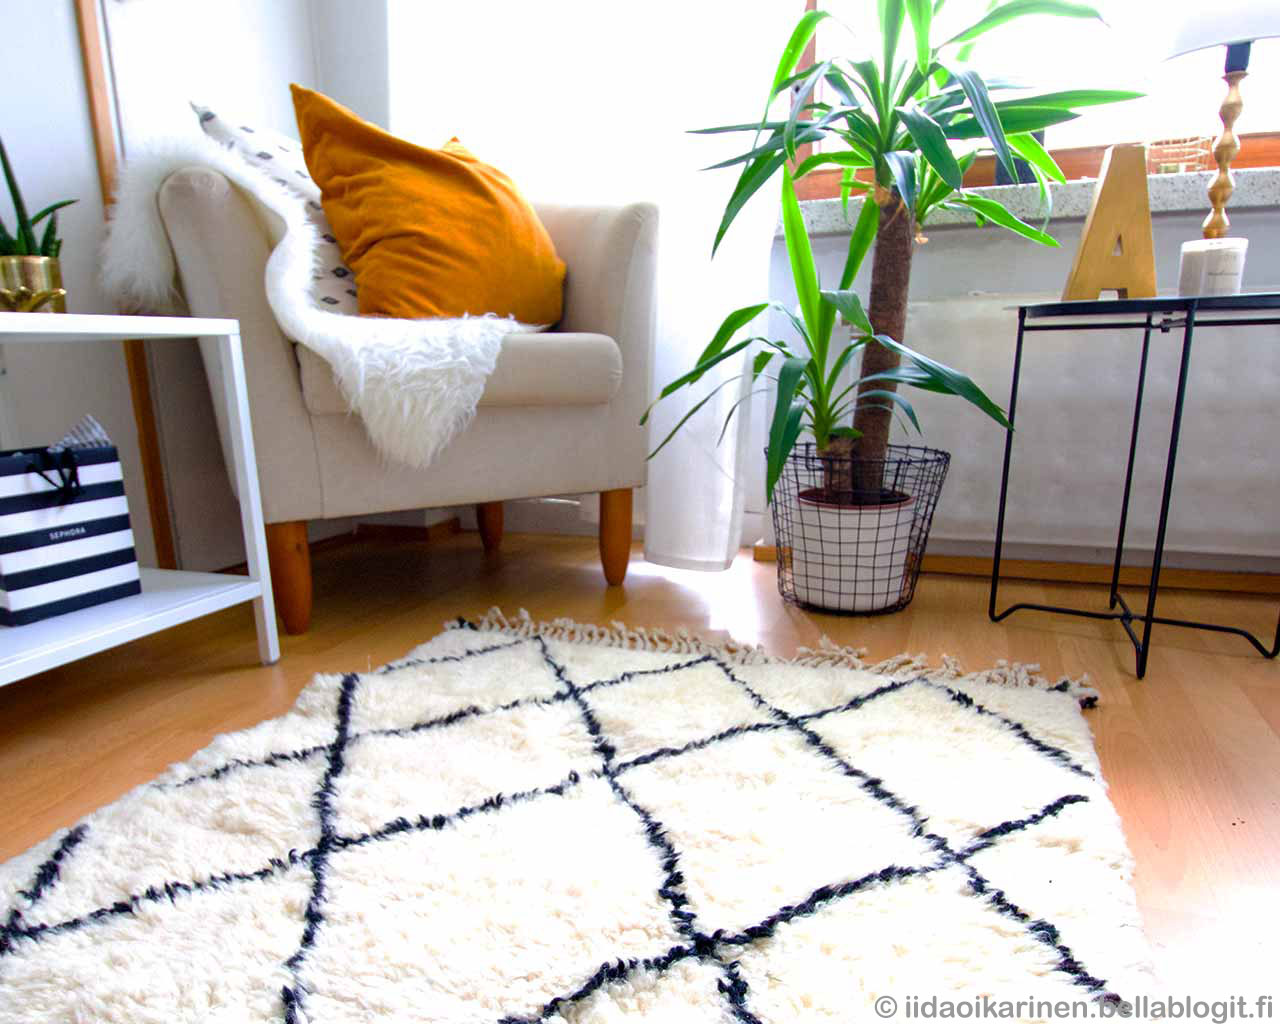 blog diamond patter berber carpet from morocco beni ourain chair green plant 2